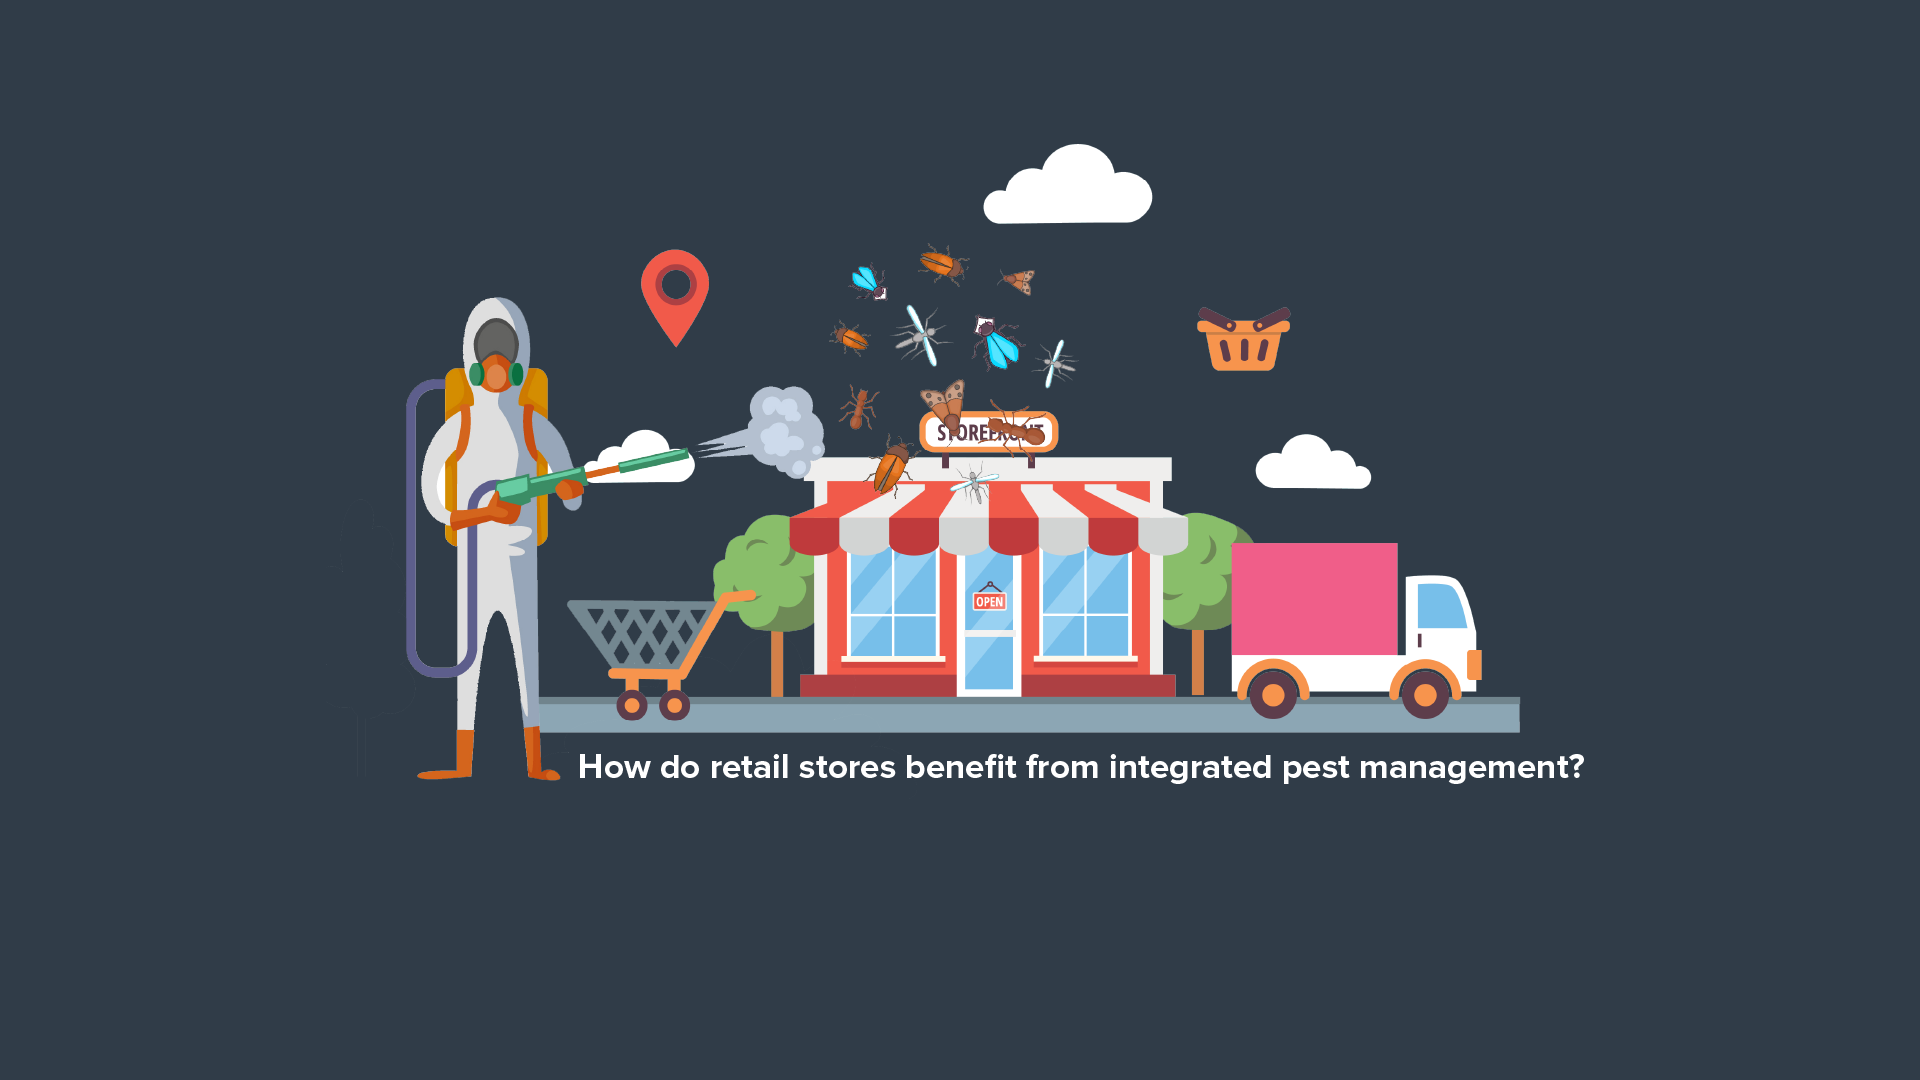 How do retail stores benefit from integrated pest management?